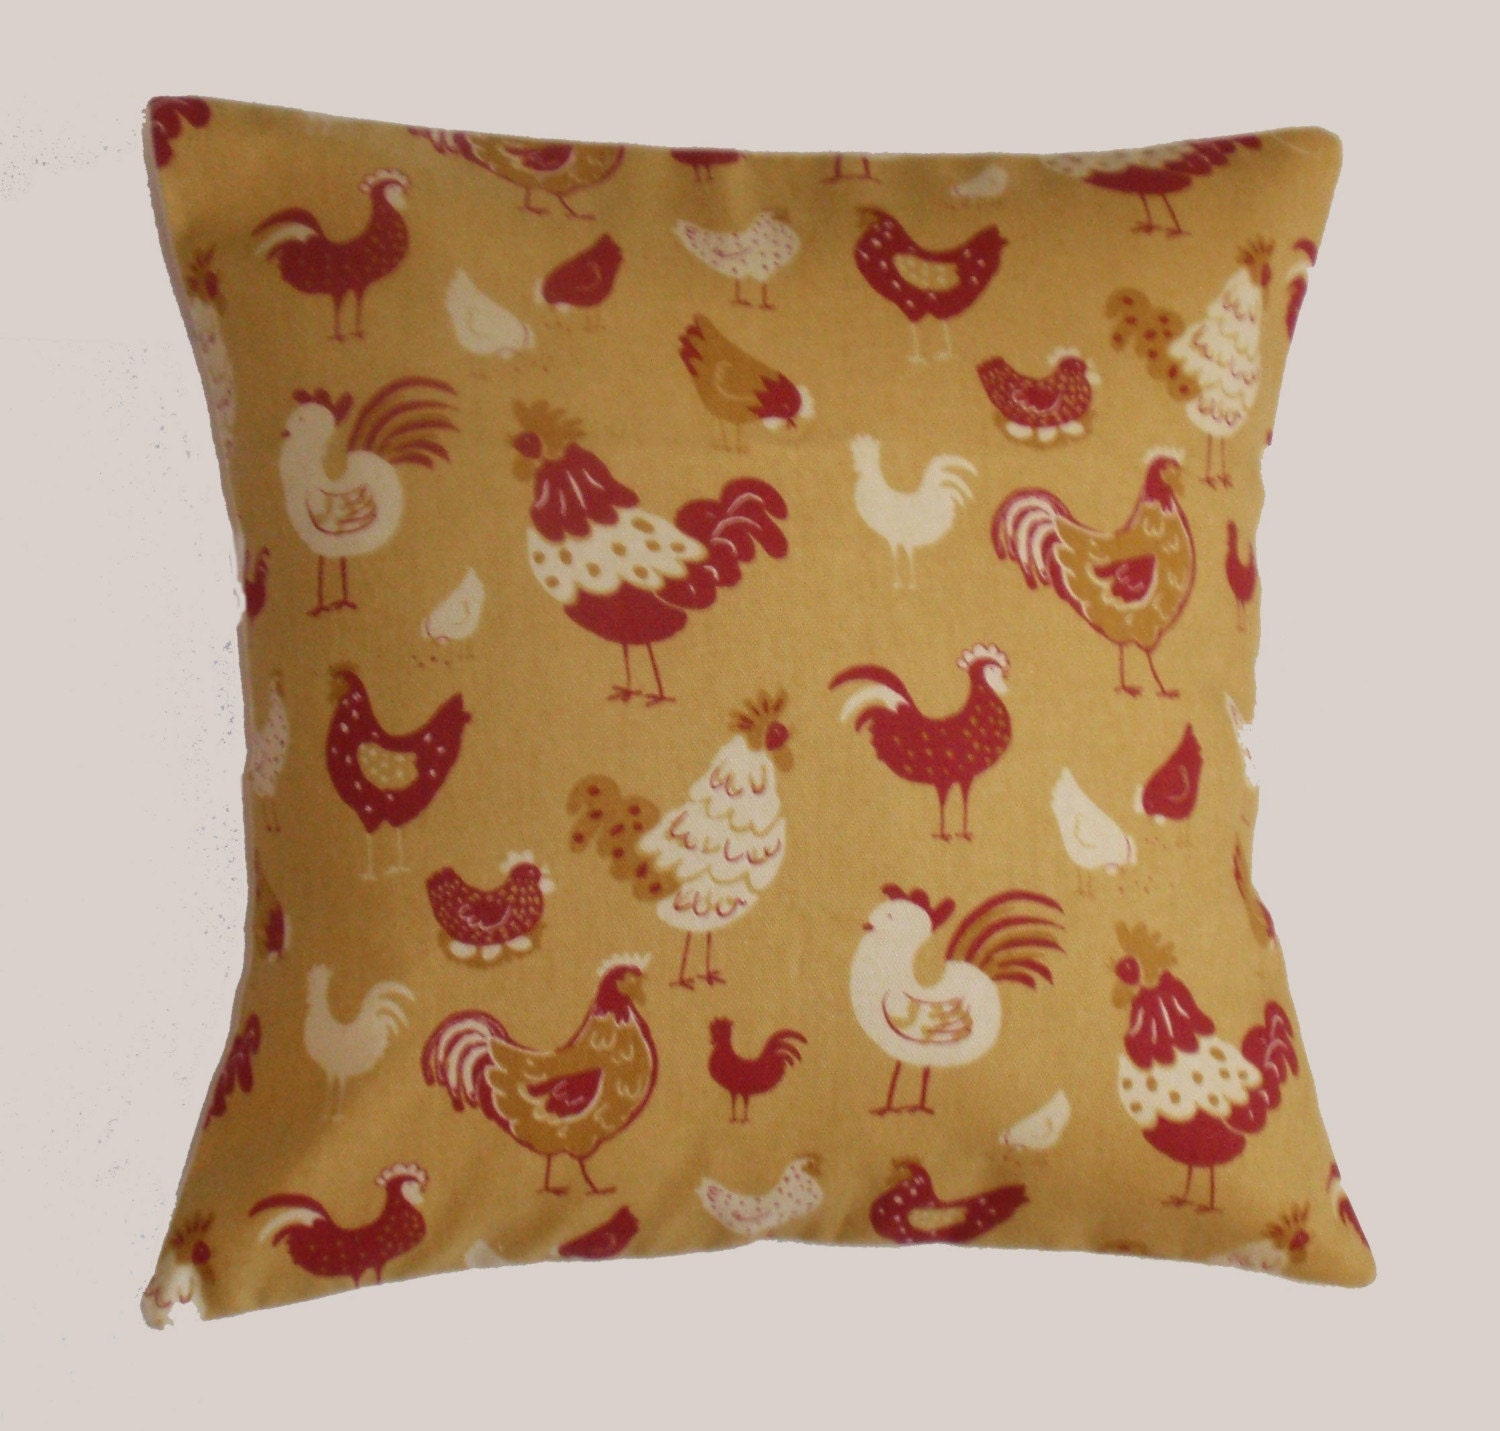 Decorative Pillows With Chickens : Throw Pillow Cover Whimsical Chickens Pillow Cover